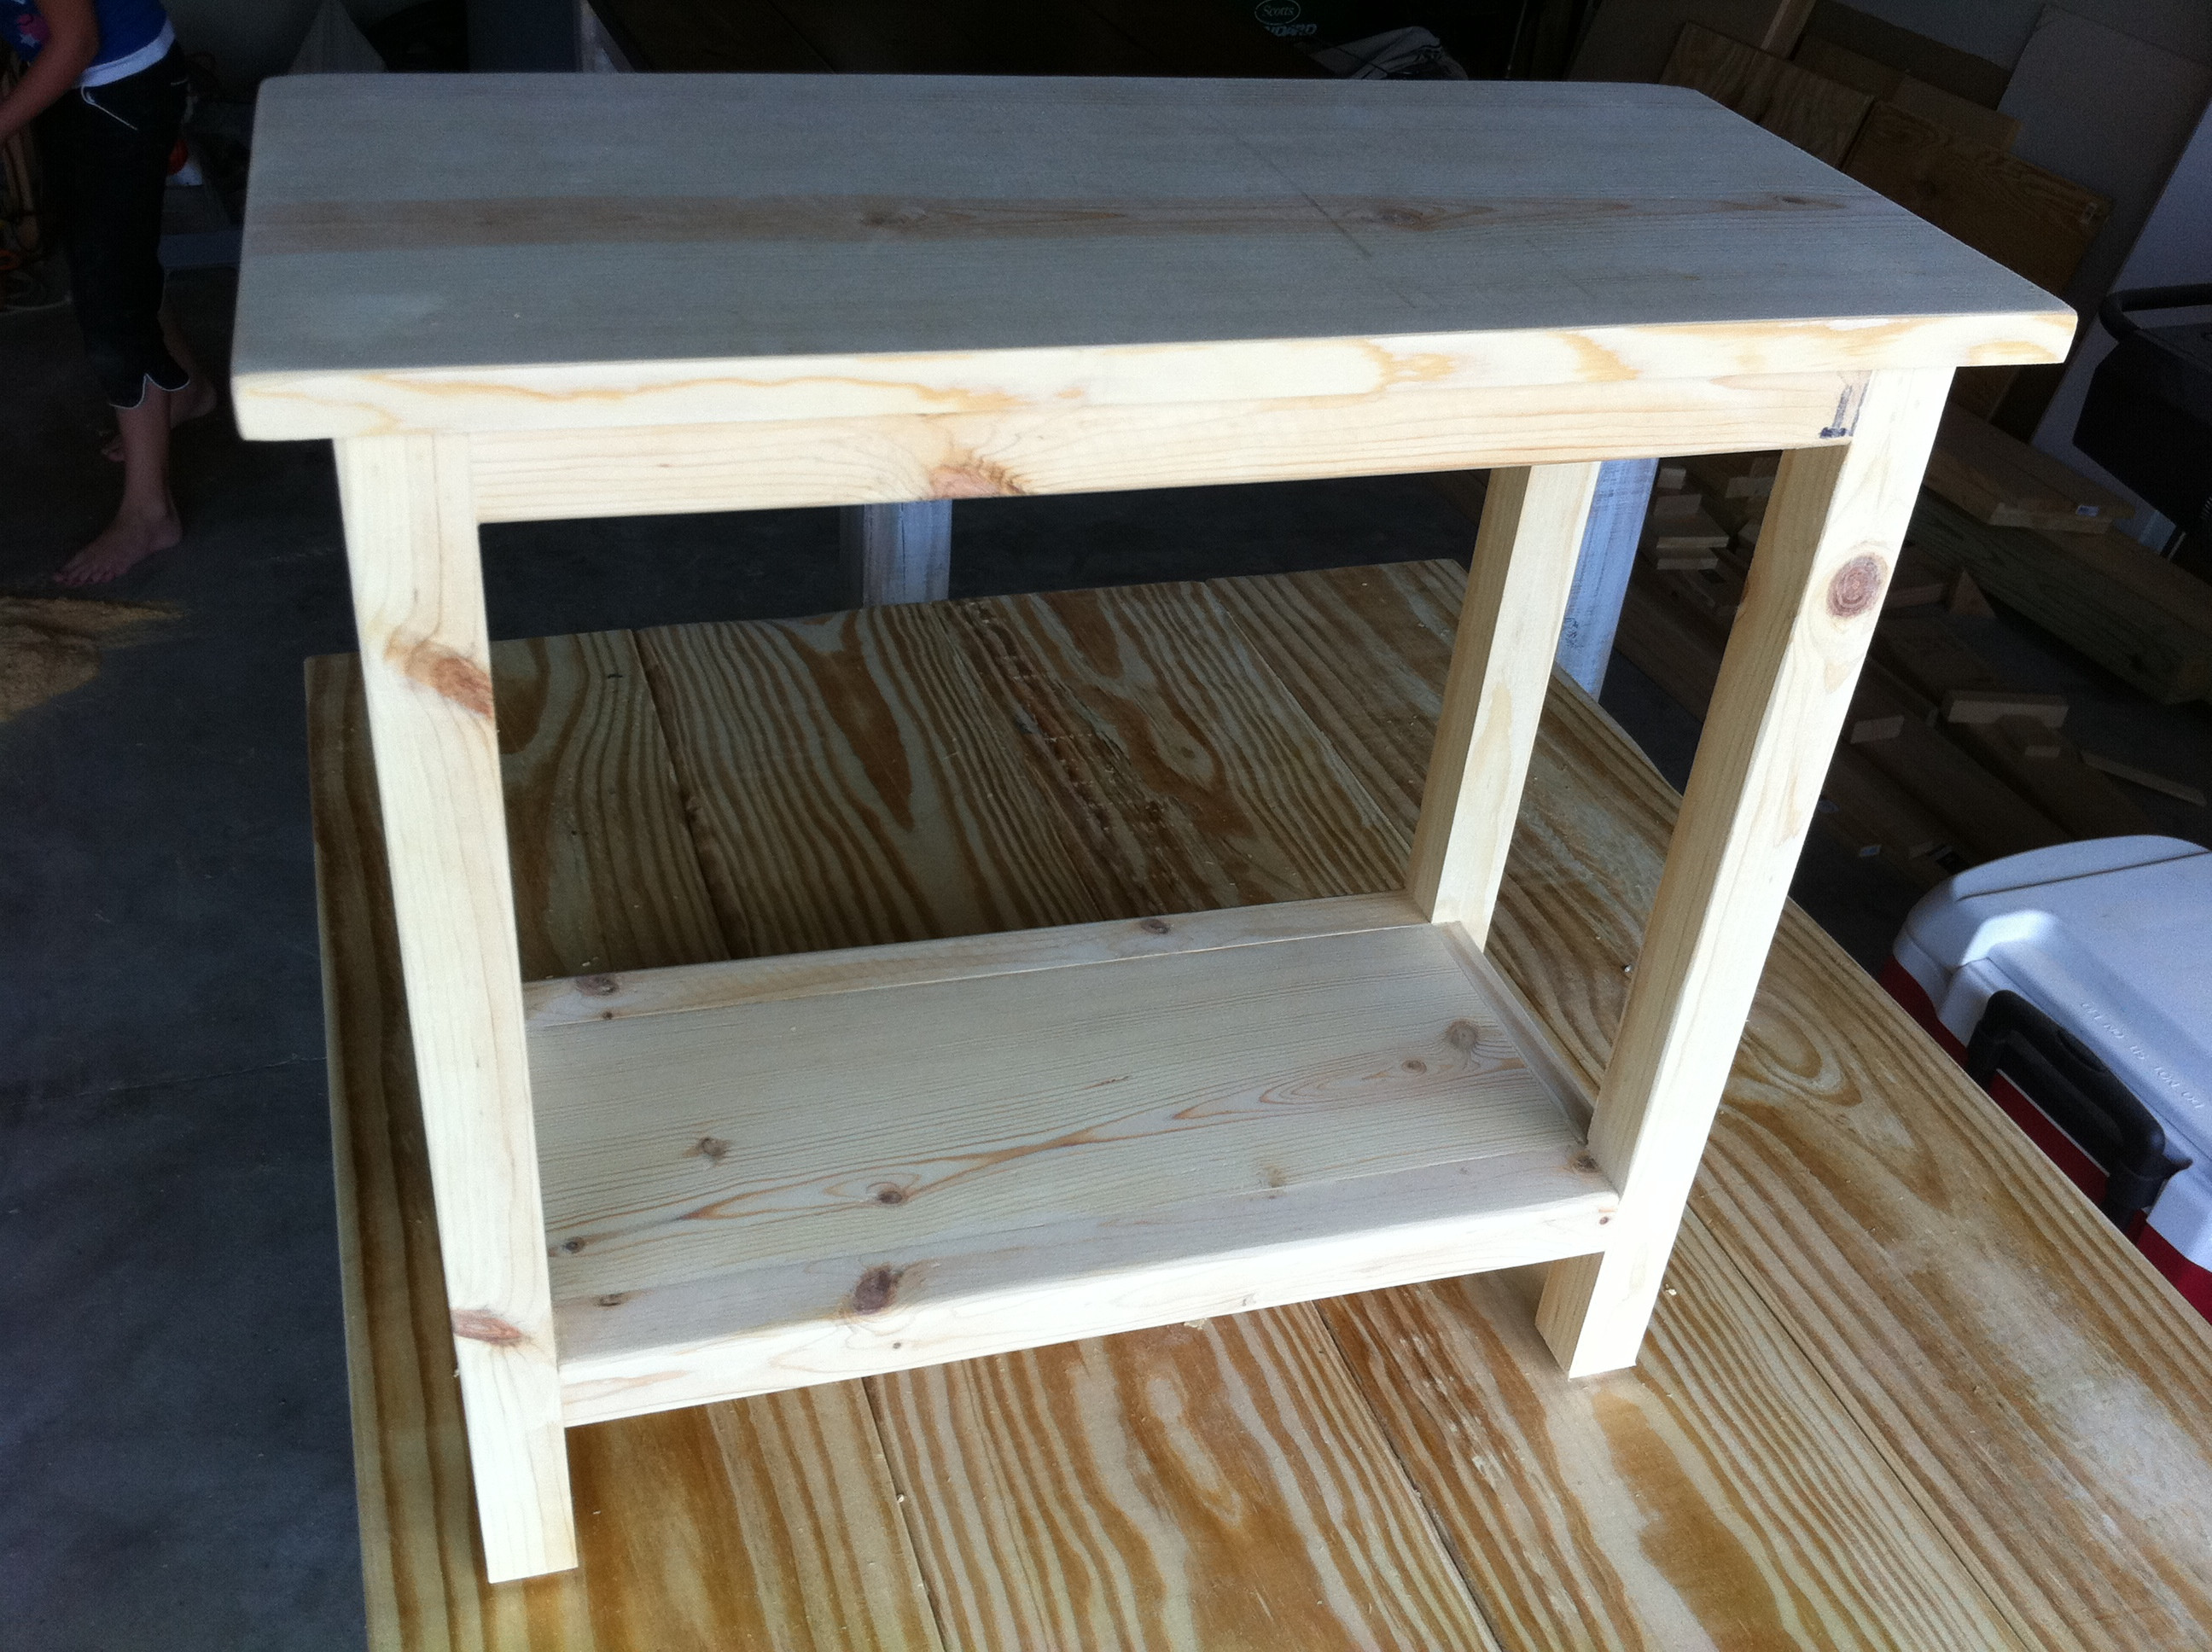 Best ideas about End Table Plans DIY . Save or Pin Ana White Now.